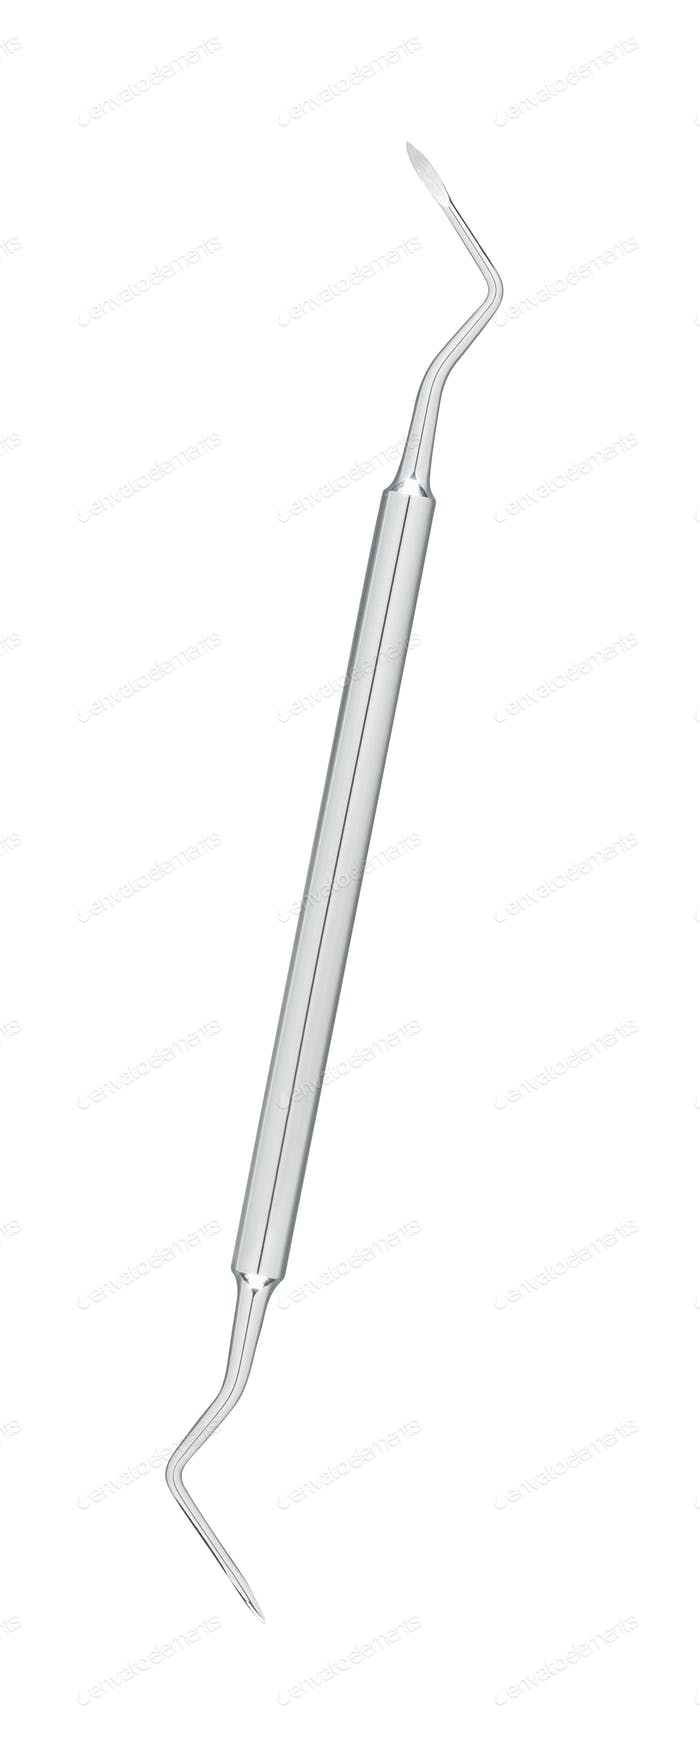 Dental instrument isolated on white